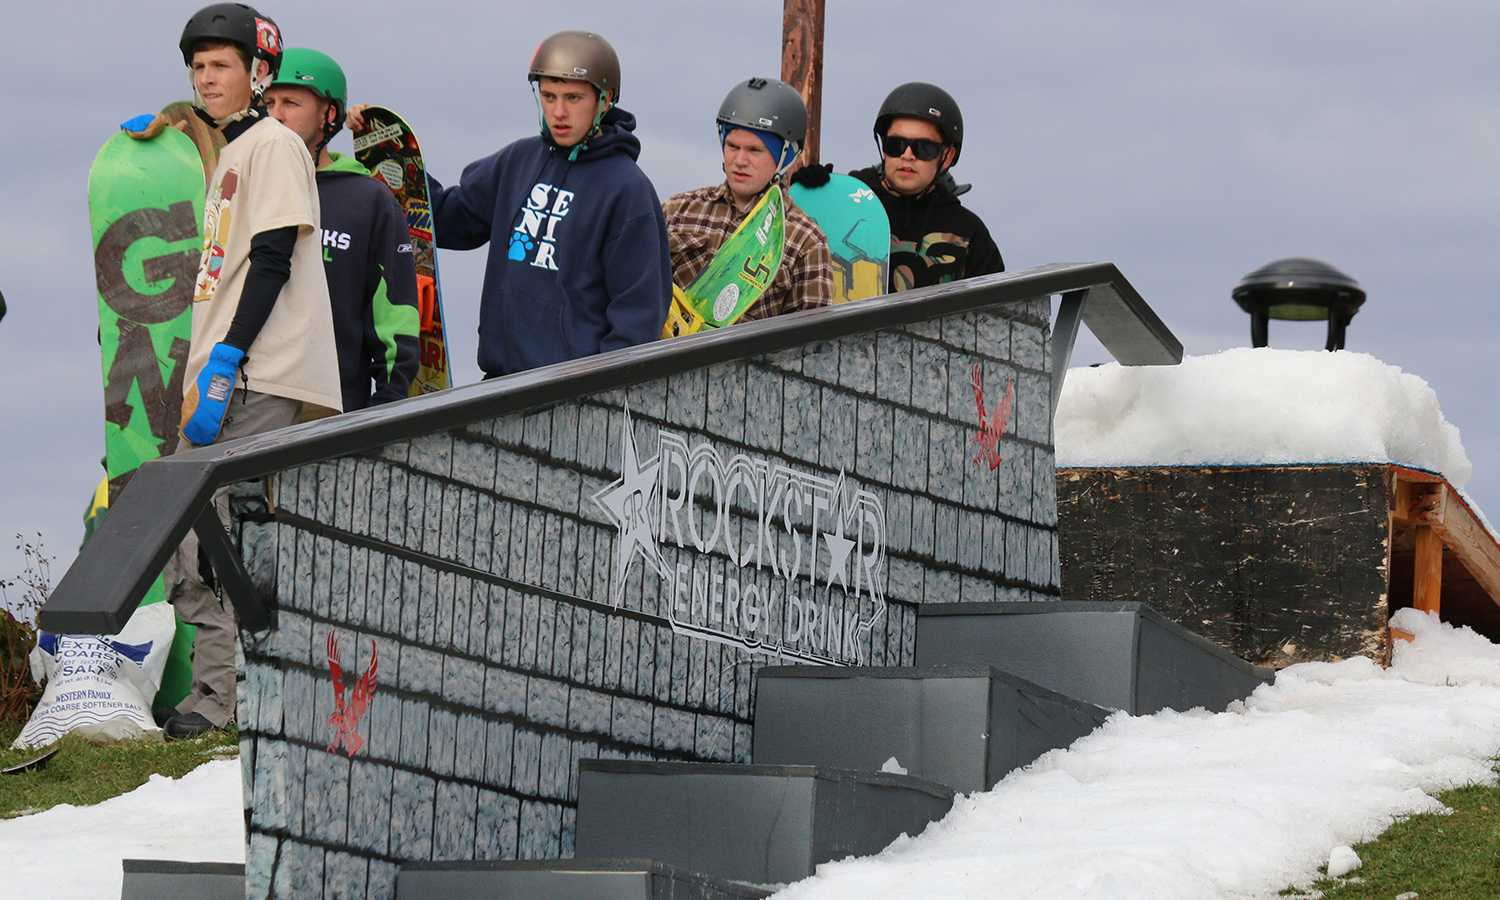 The Easterner : Eastern shreds at annual Rail Jam